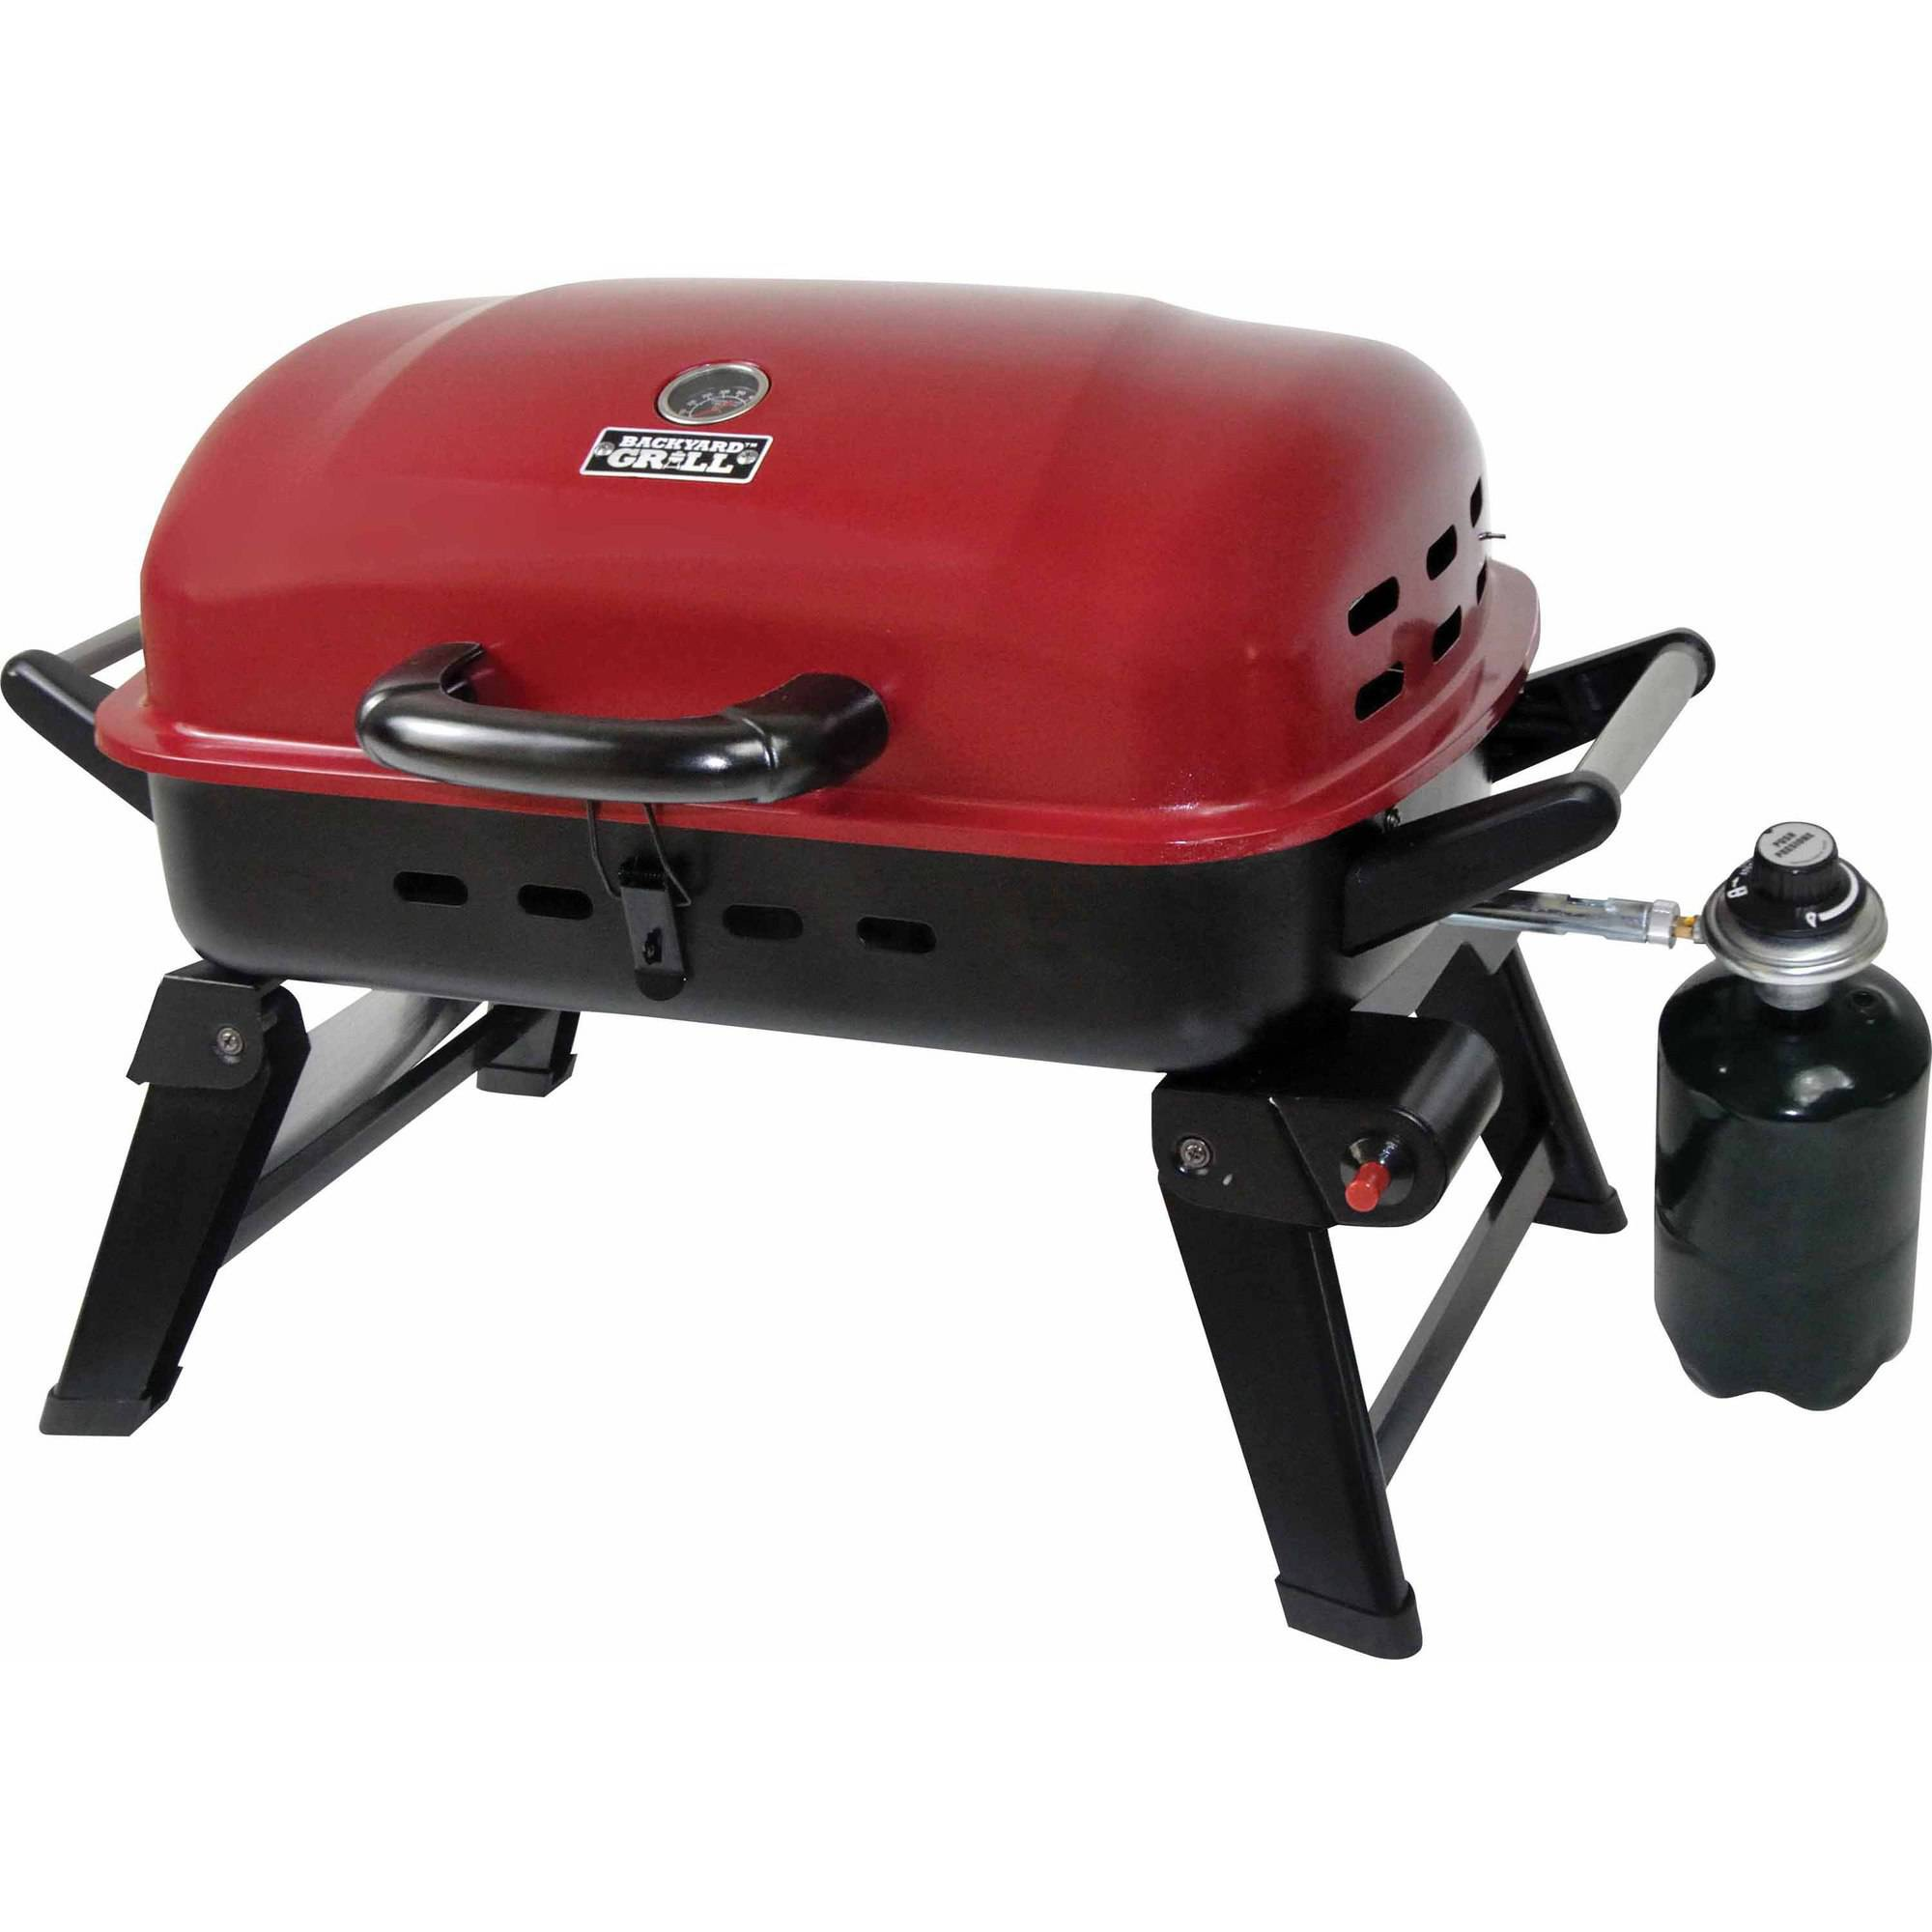 "Backyard Grill 20"" Portable Gas Grill"